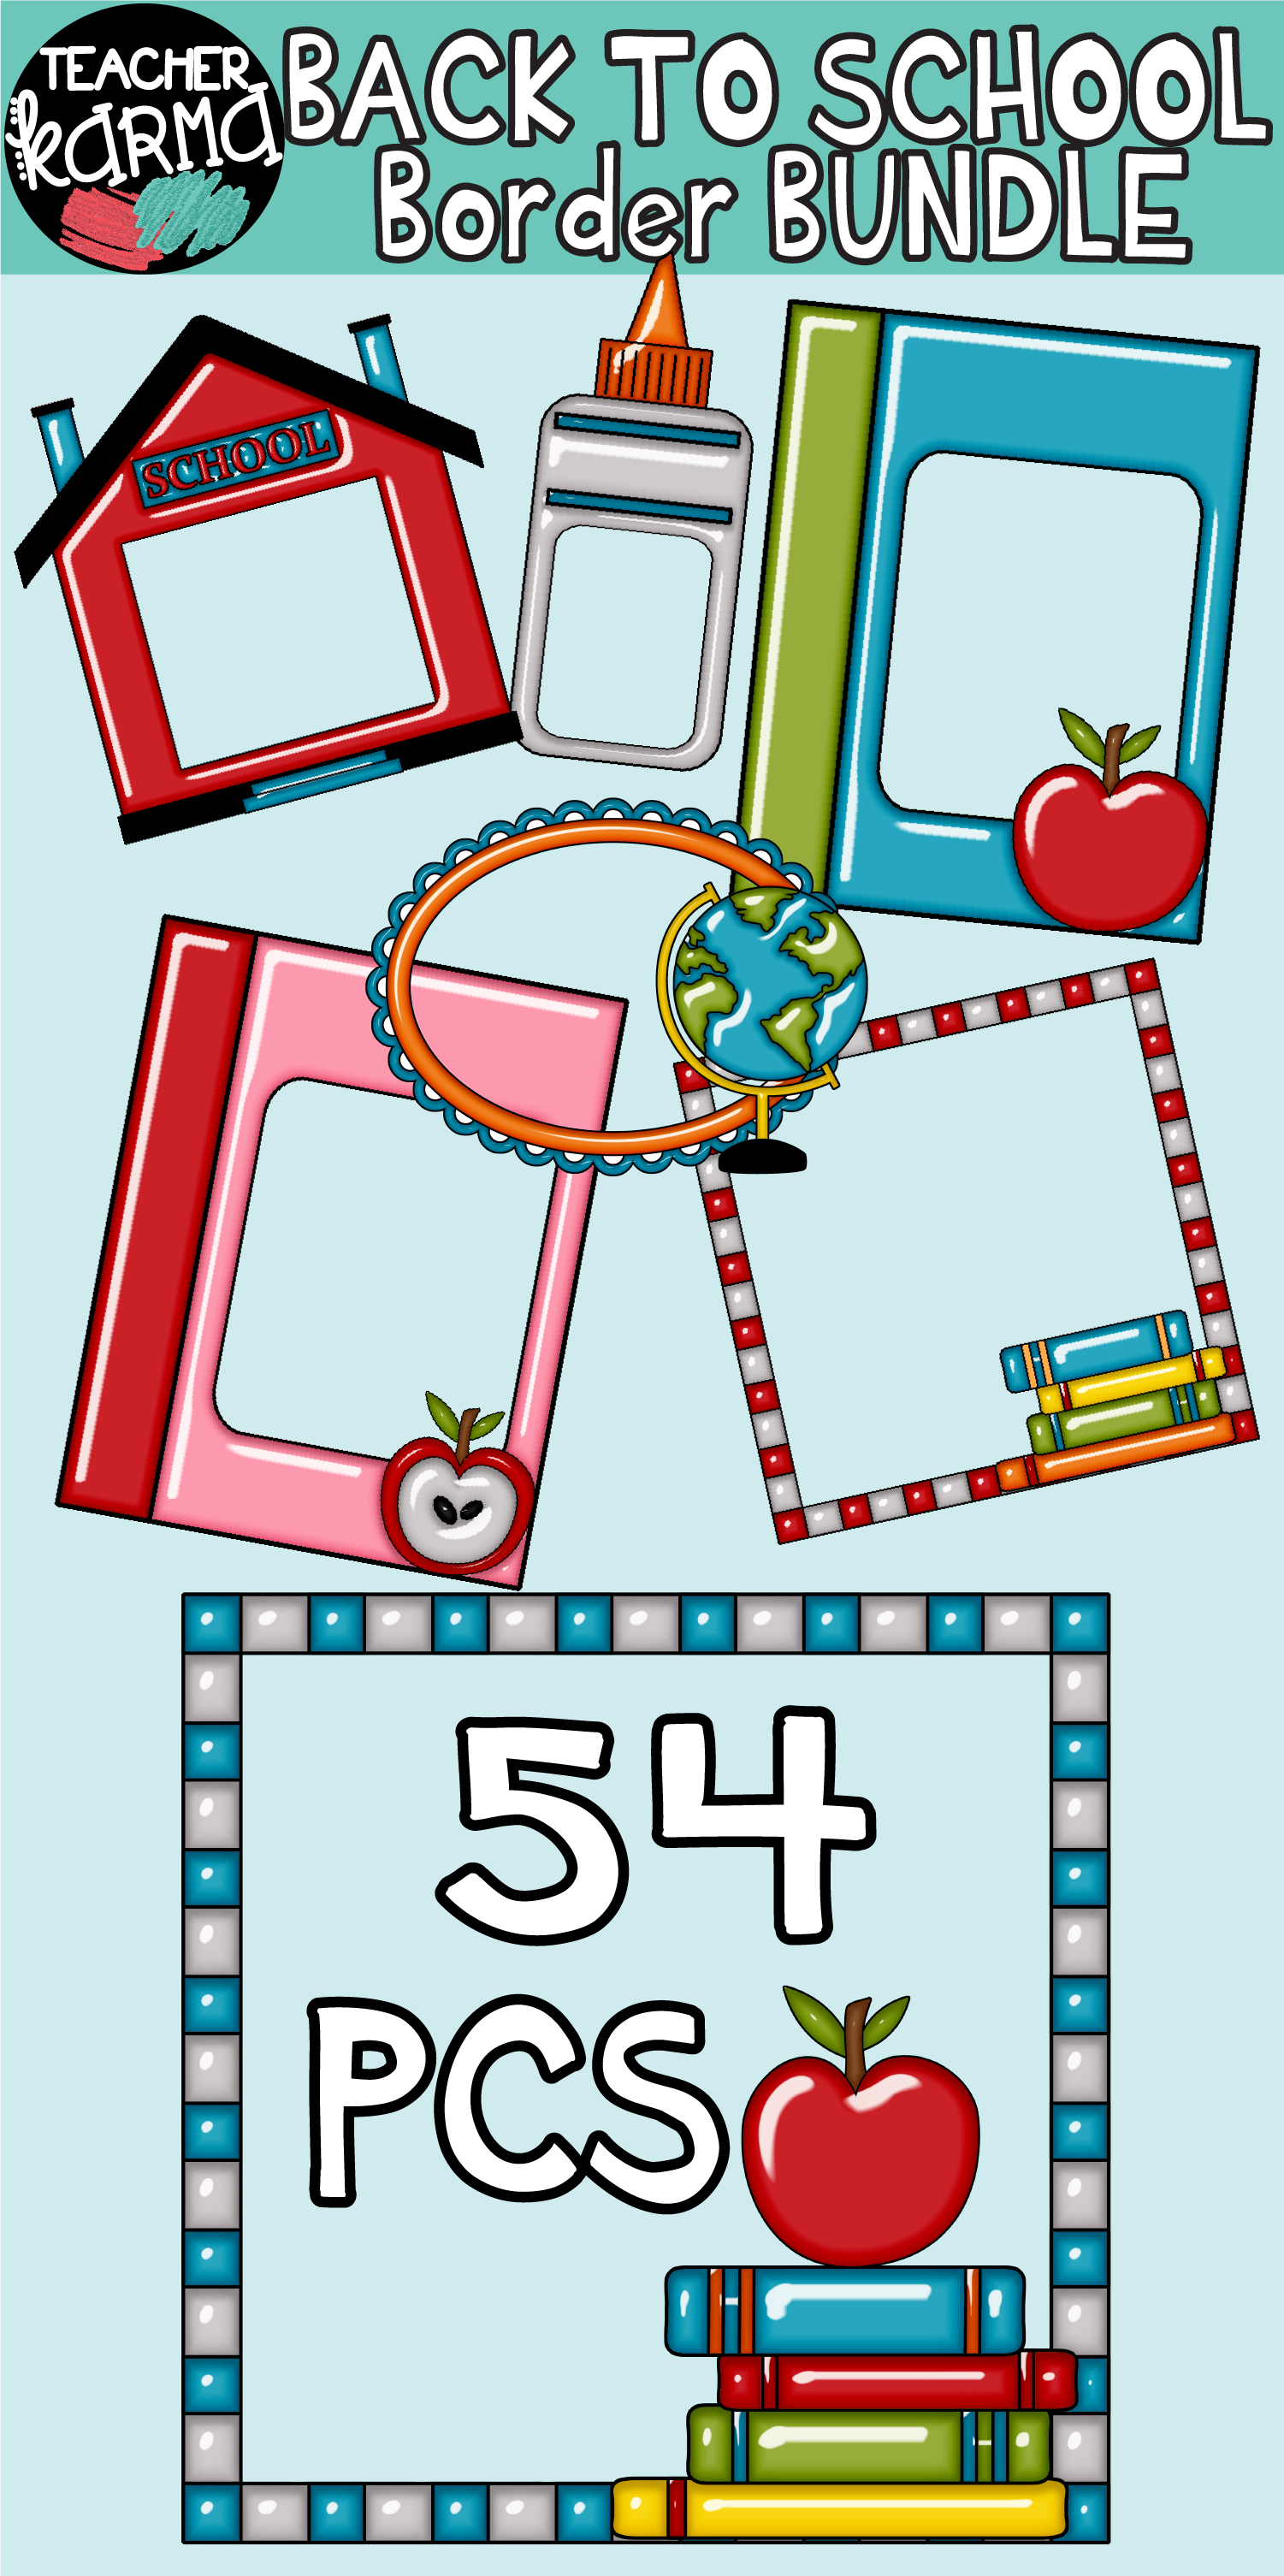 back to school borders, frames, clipart | back to school resources